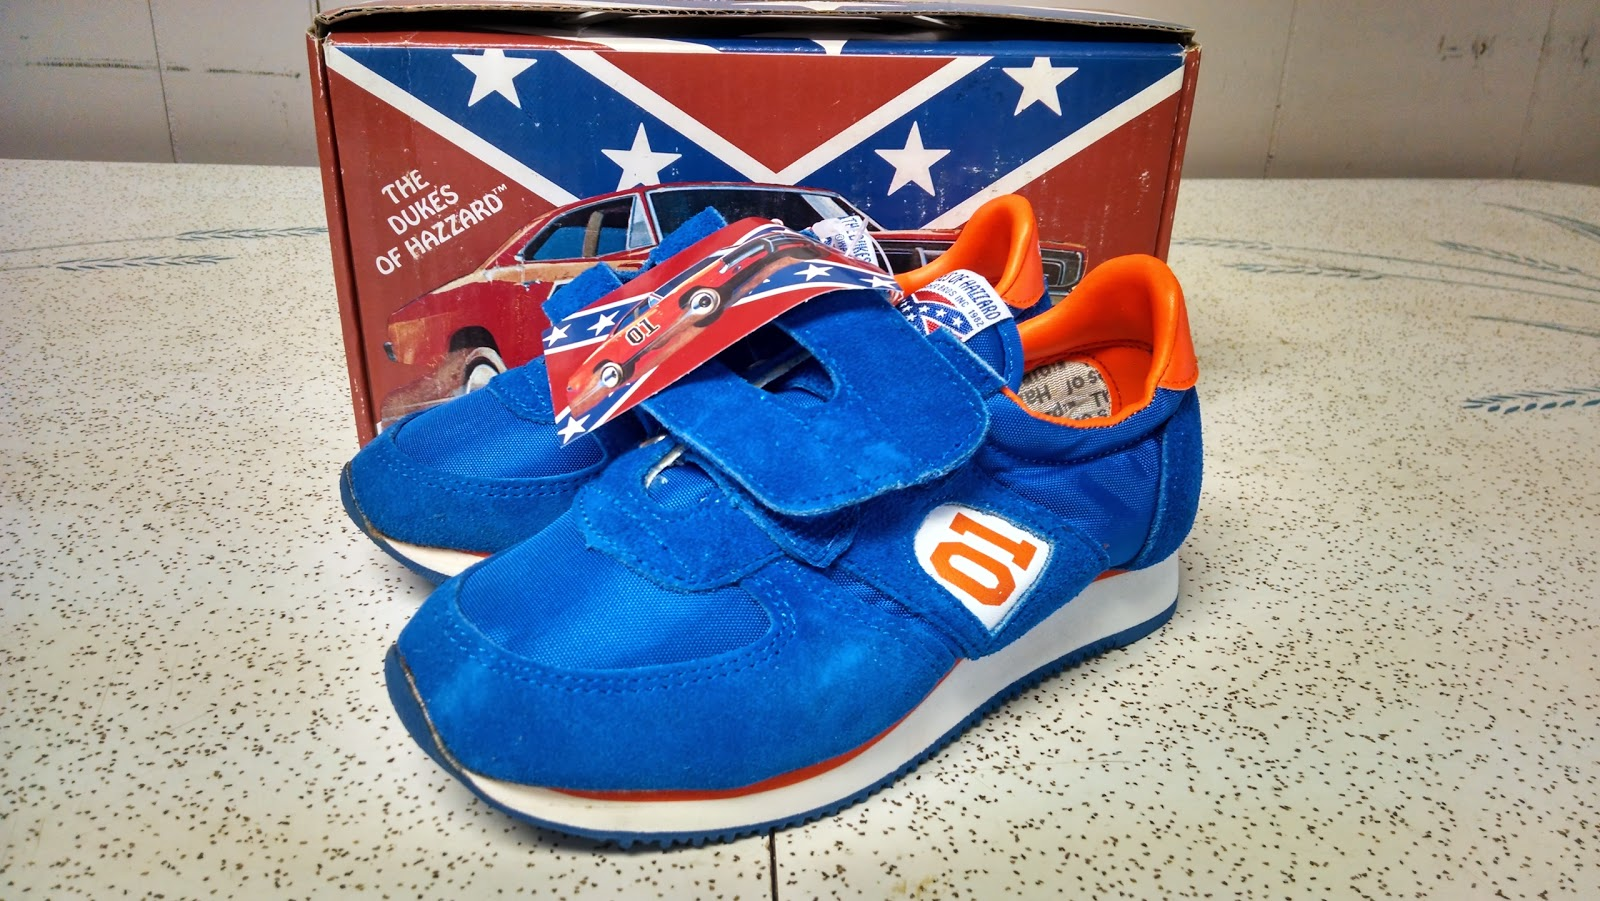 Holiest of Holy Grails: Dukes of Hazzard Children's Tennis Shoes